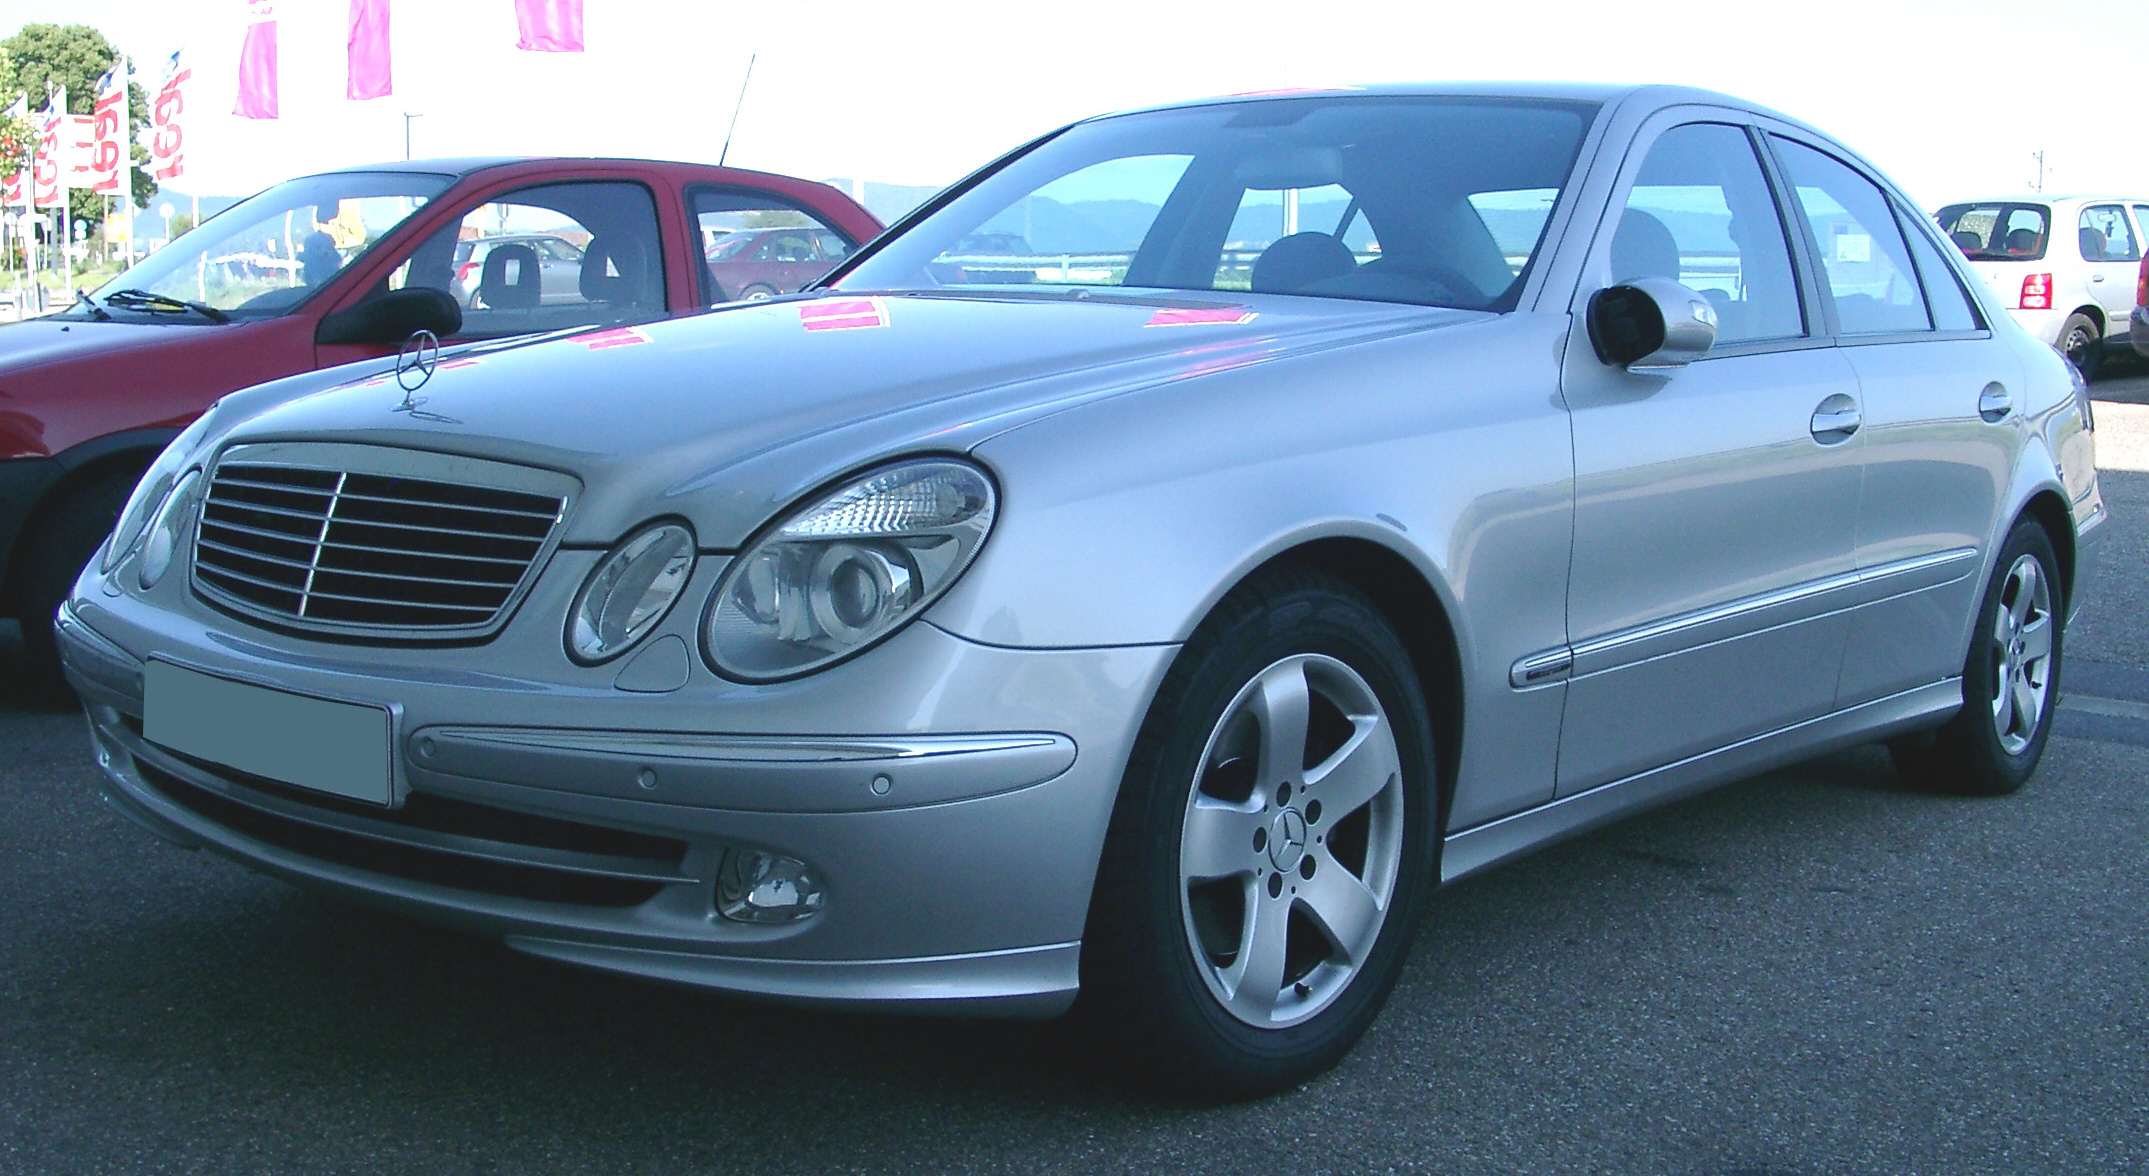 mercedes benz e270 cdi photos reviews news specs buy car. Black Bedroom Furniture Sets. Home Design Ideas